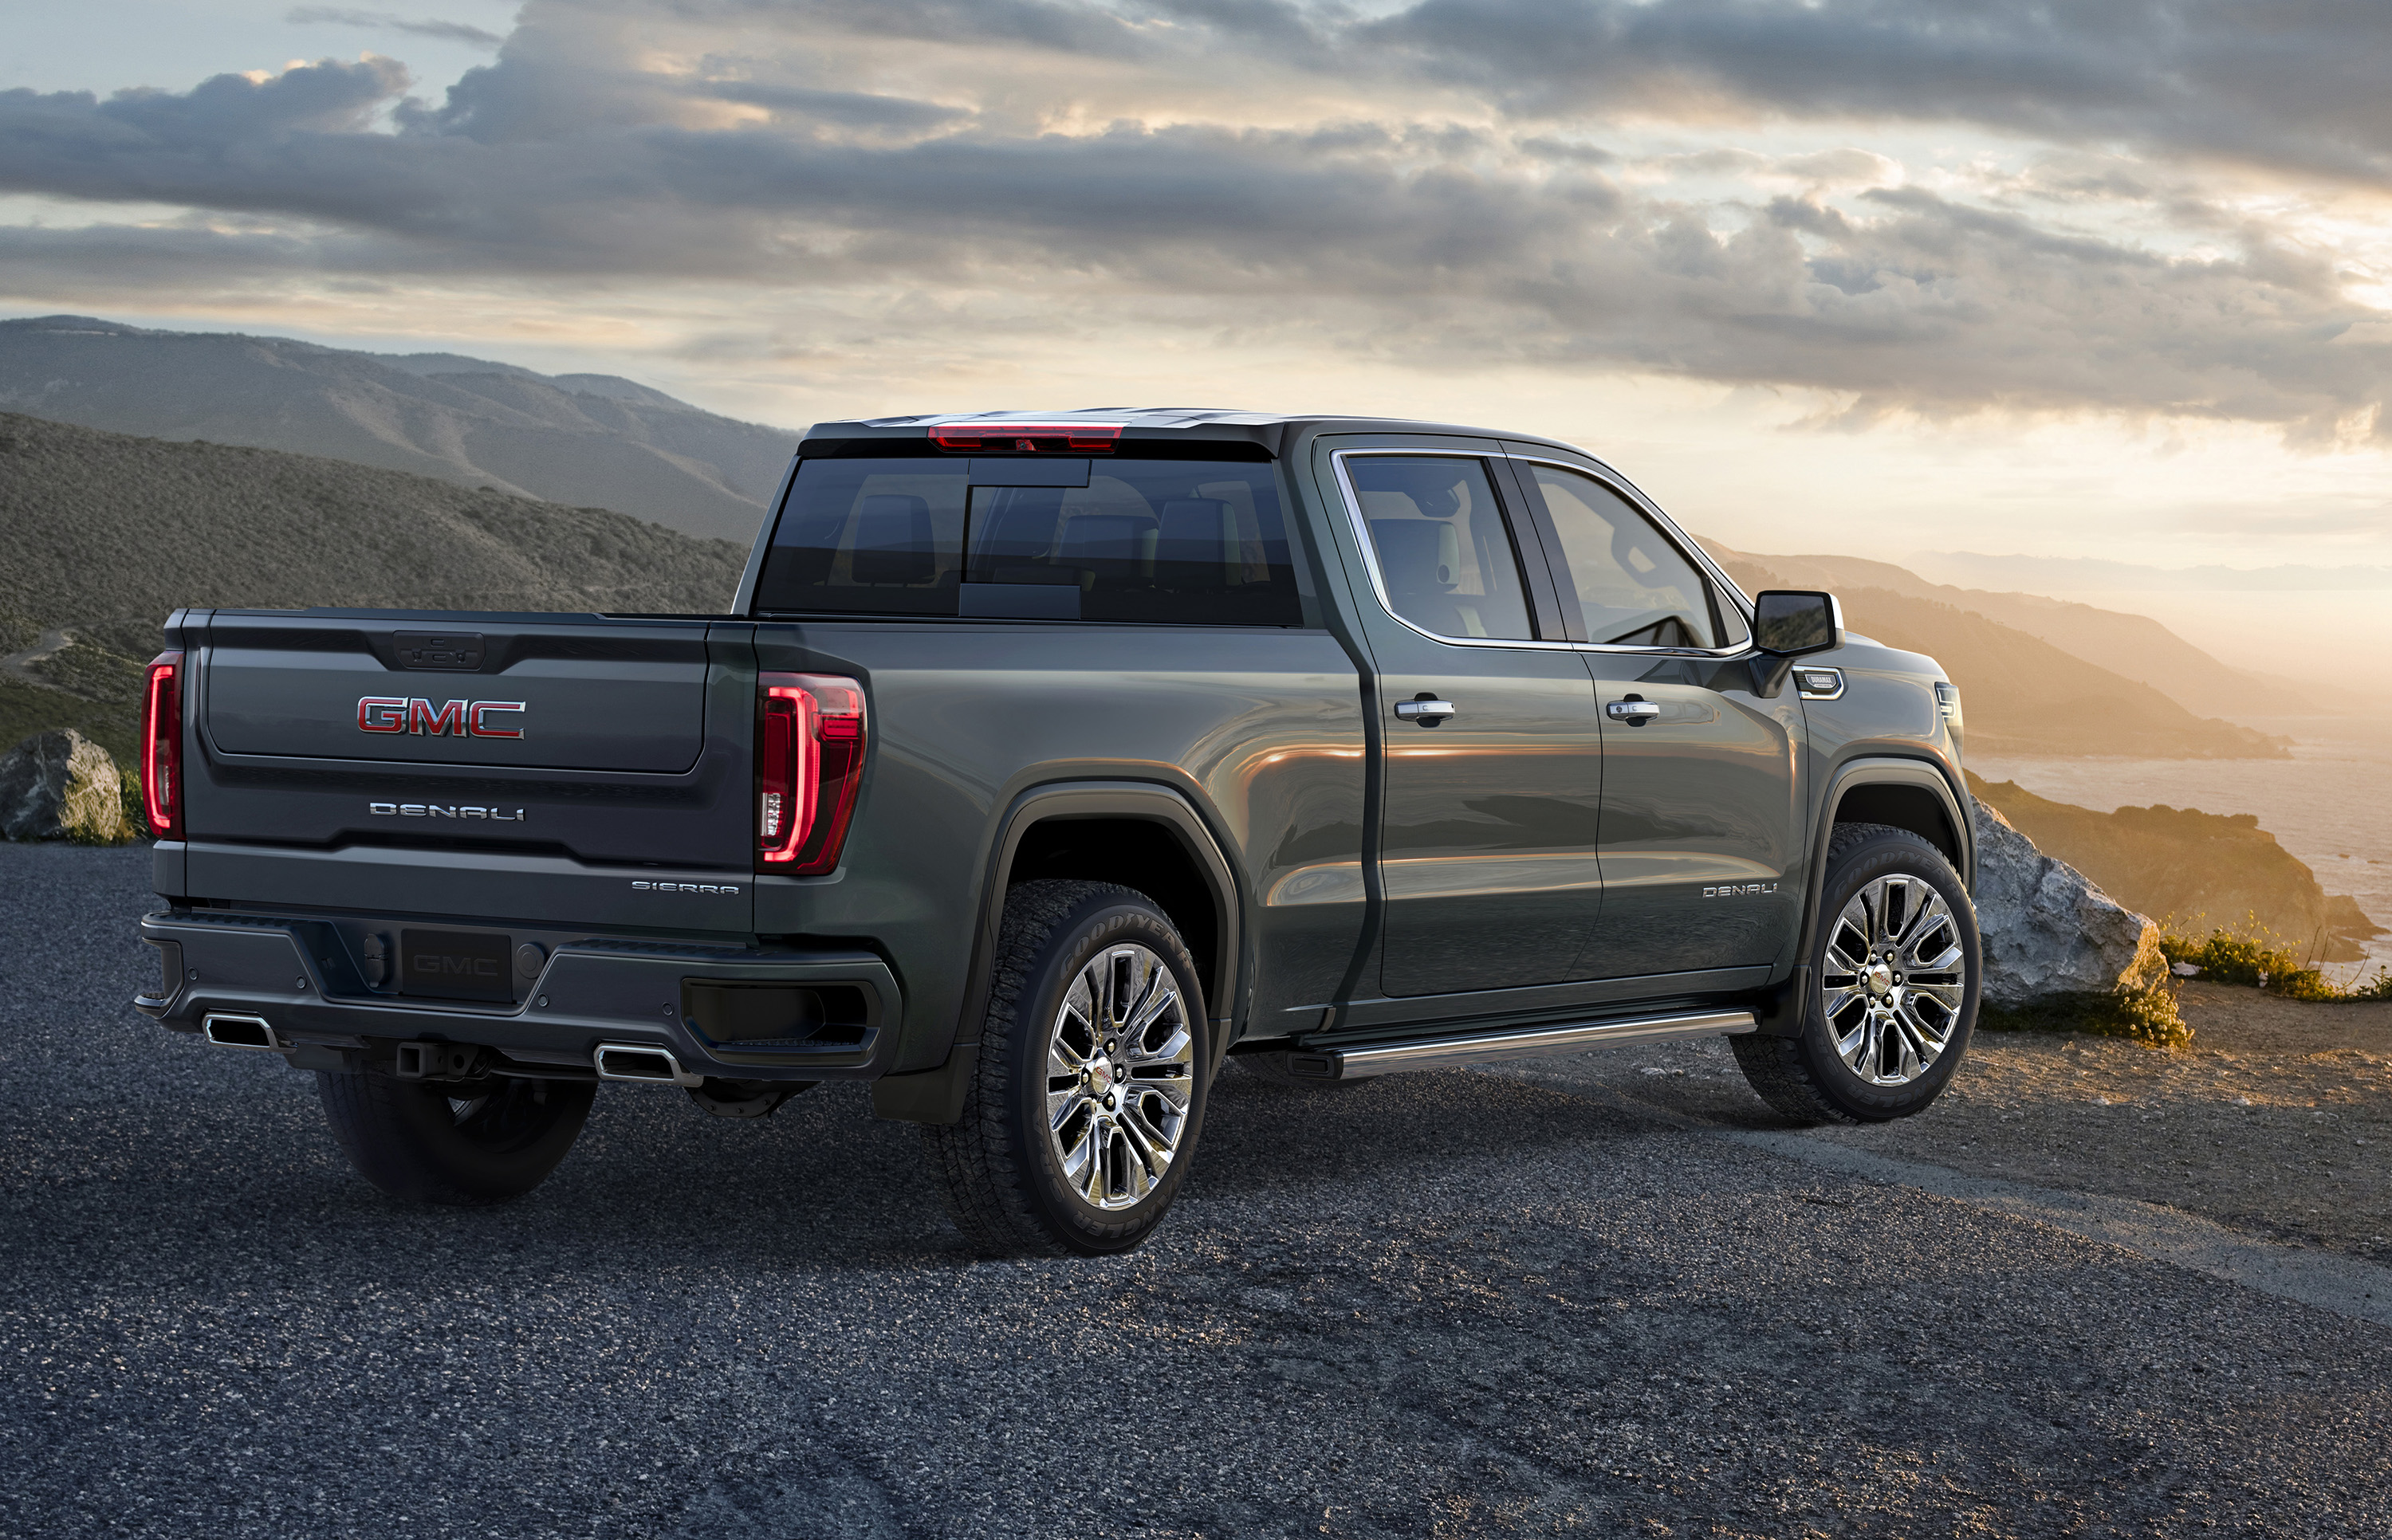 2019 Gmc Sierra 1500 Tailgate Of The Future Gearjunkie